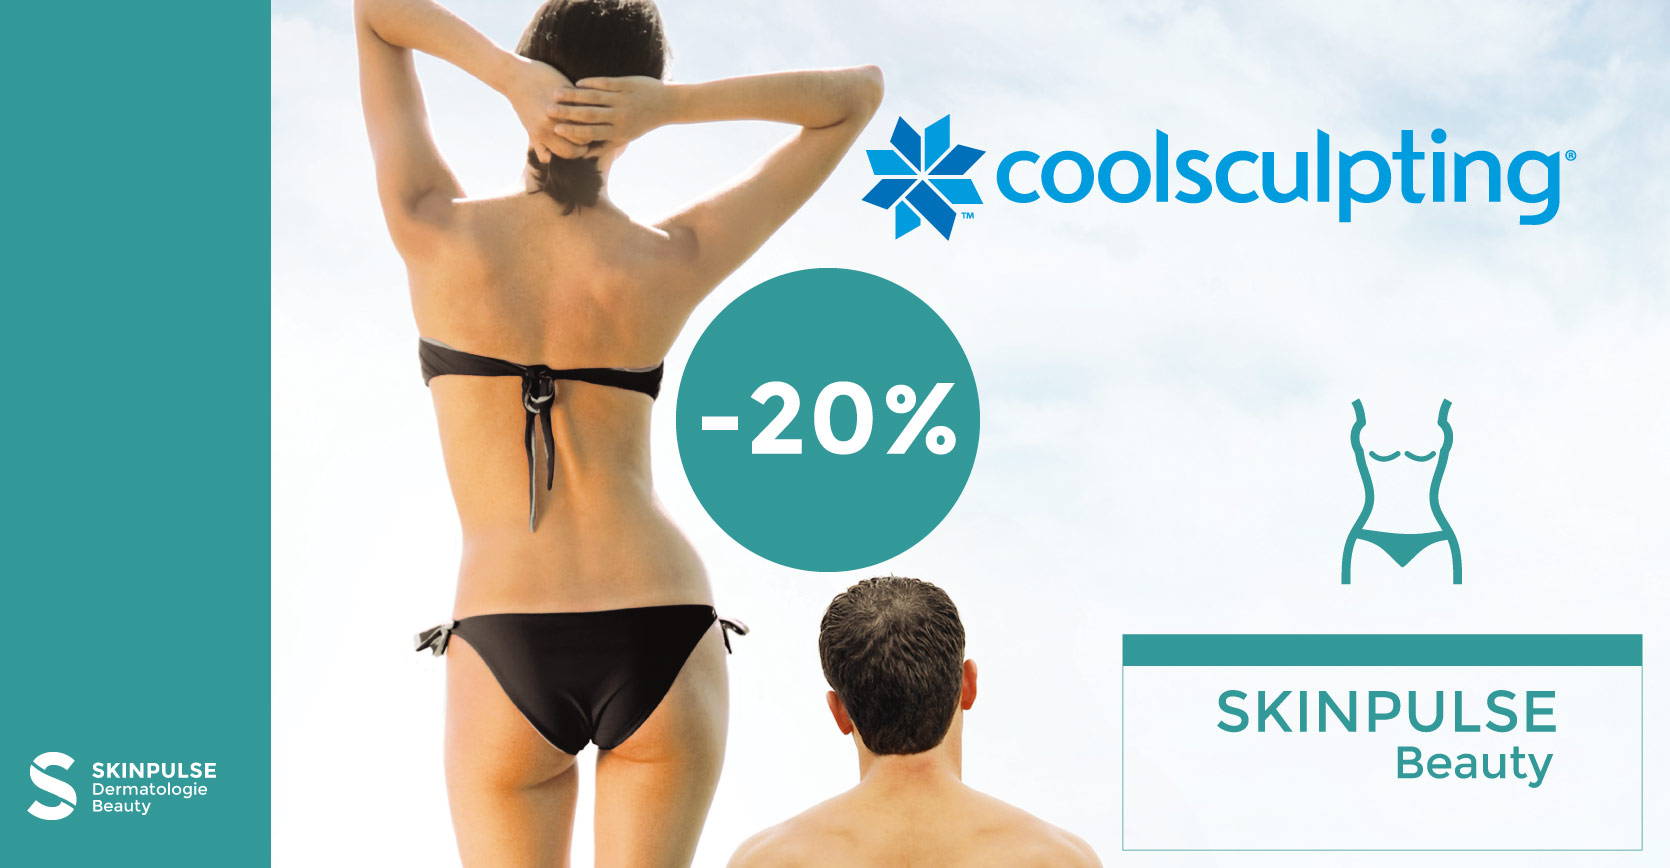 COOLSCULPTING ™ SUMMER OFFER -20%